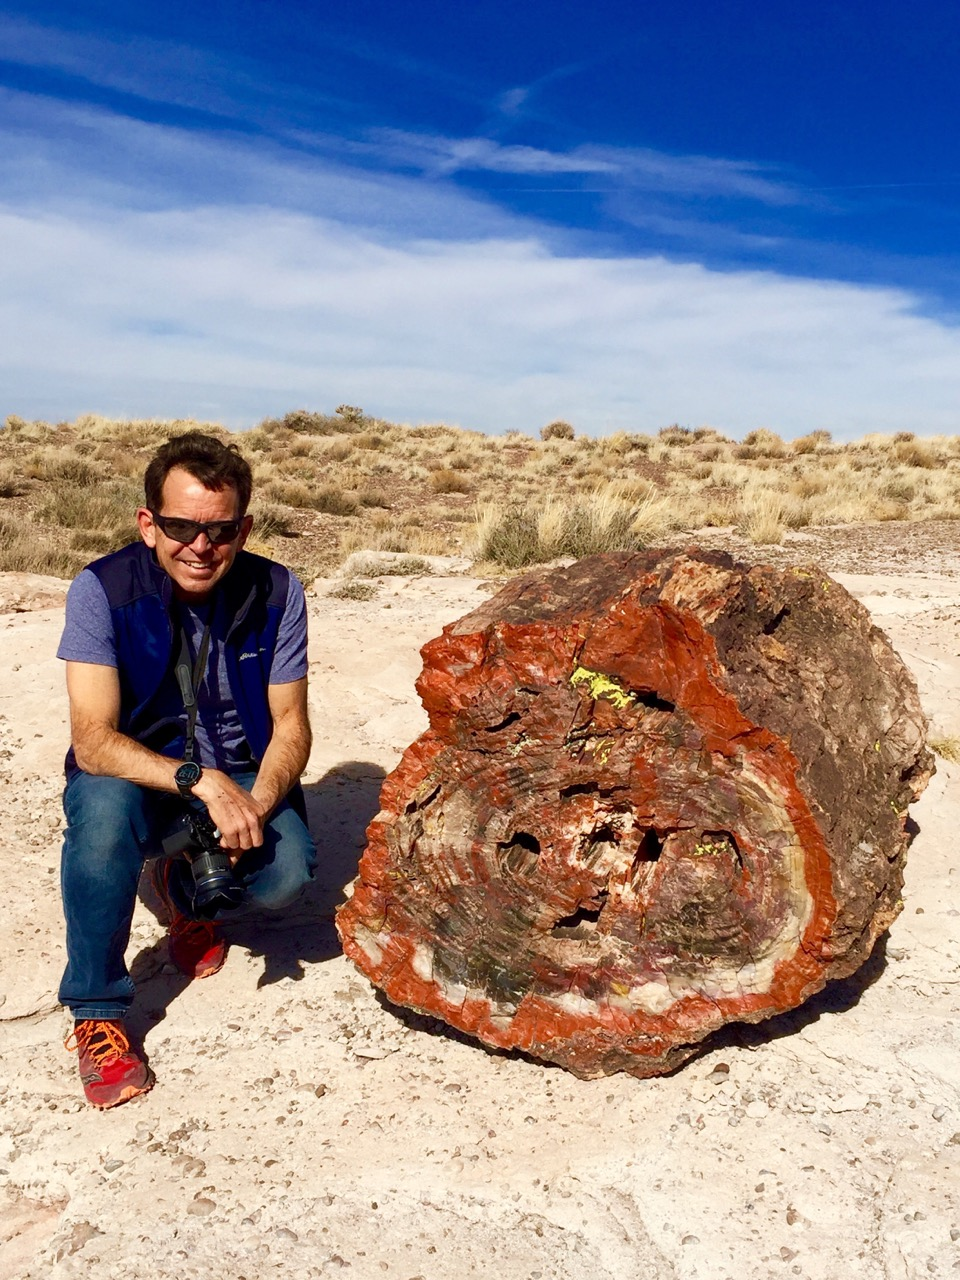 Not-the-oldest-Rick-petrified-forest-IMG_5204.jpeg